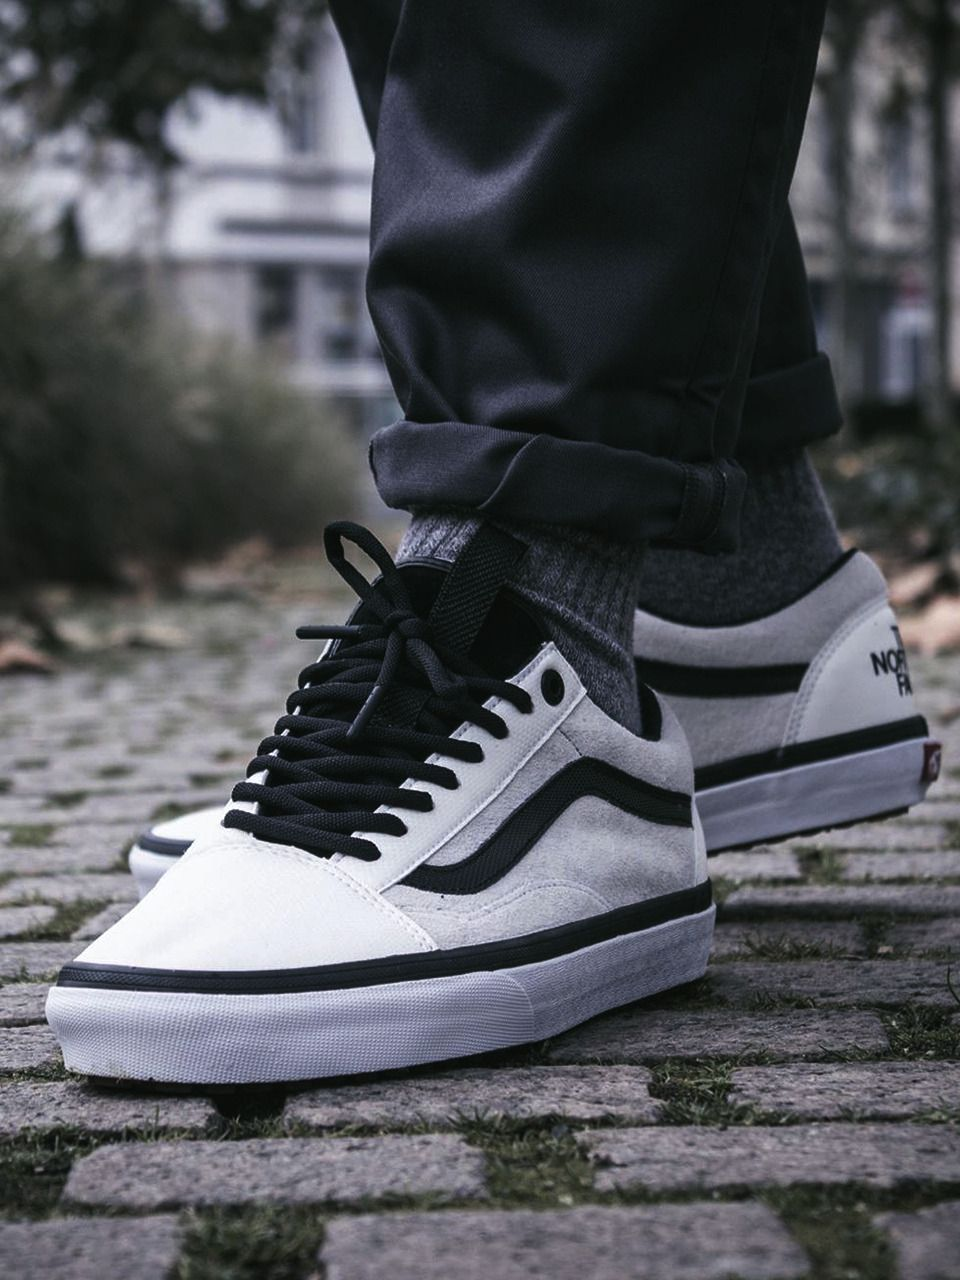 The North Face x Vans Old Skool 2017 (by chrisflanell) Buy